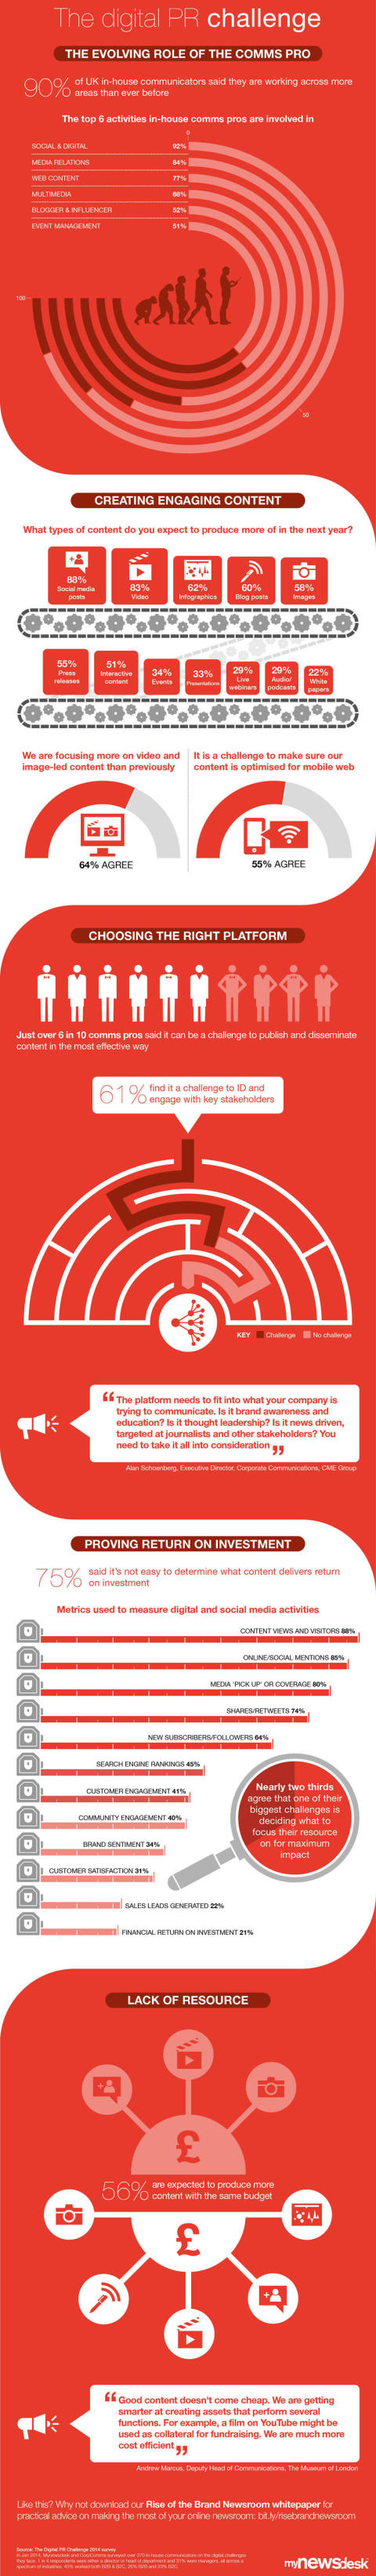 [Infographic] What are your digital PR challenges? #digiPRchallenge